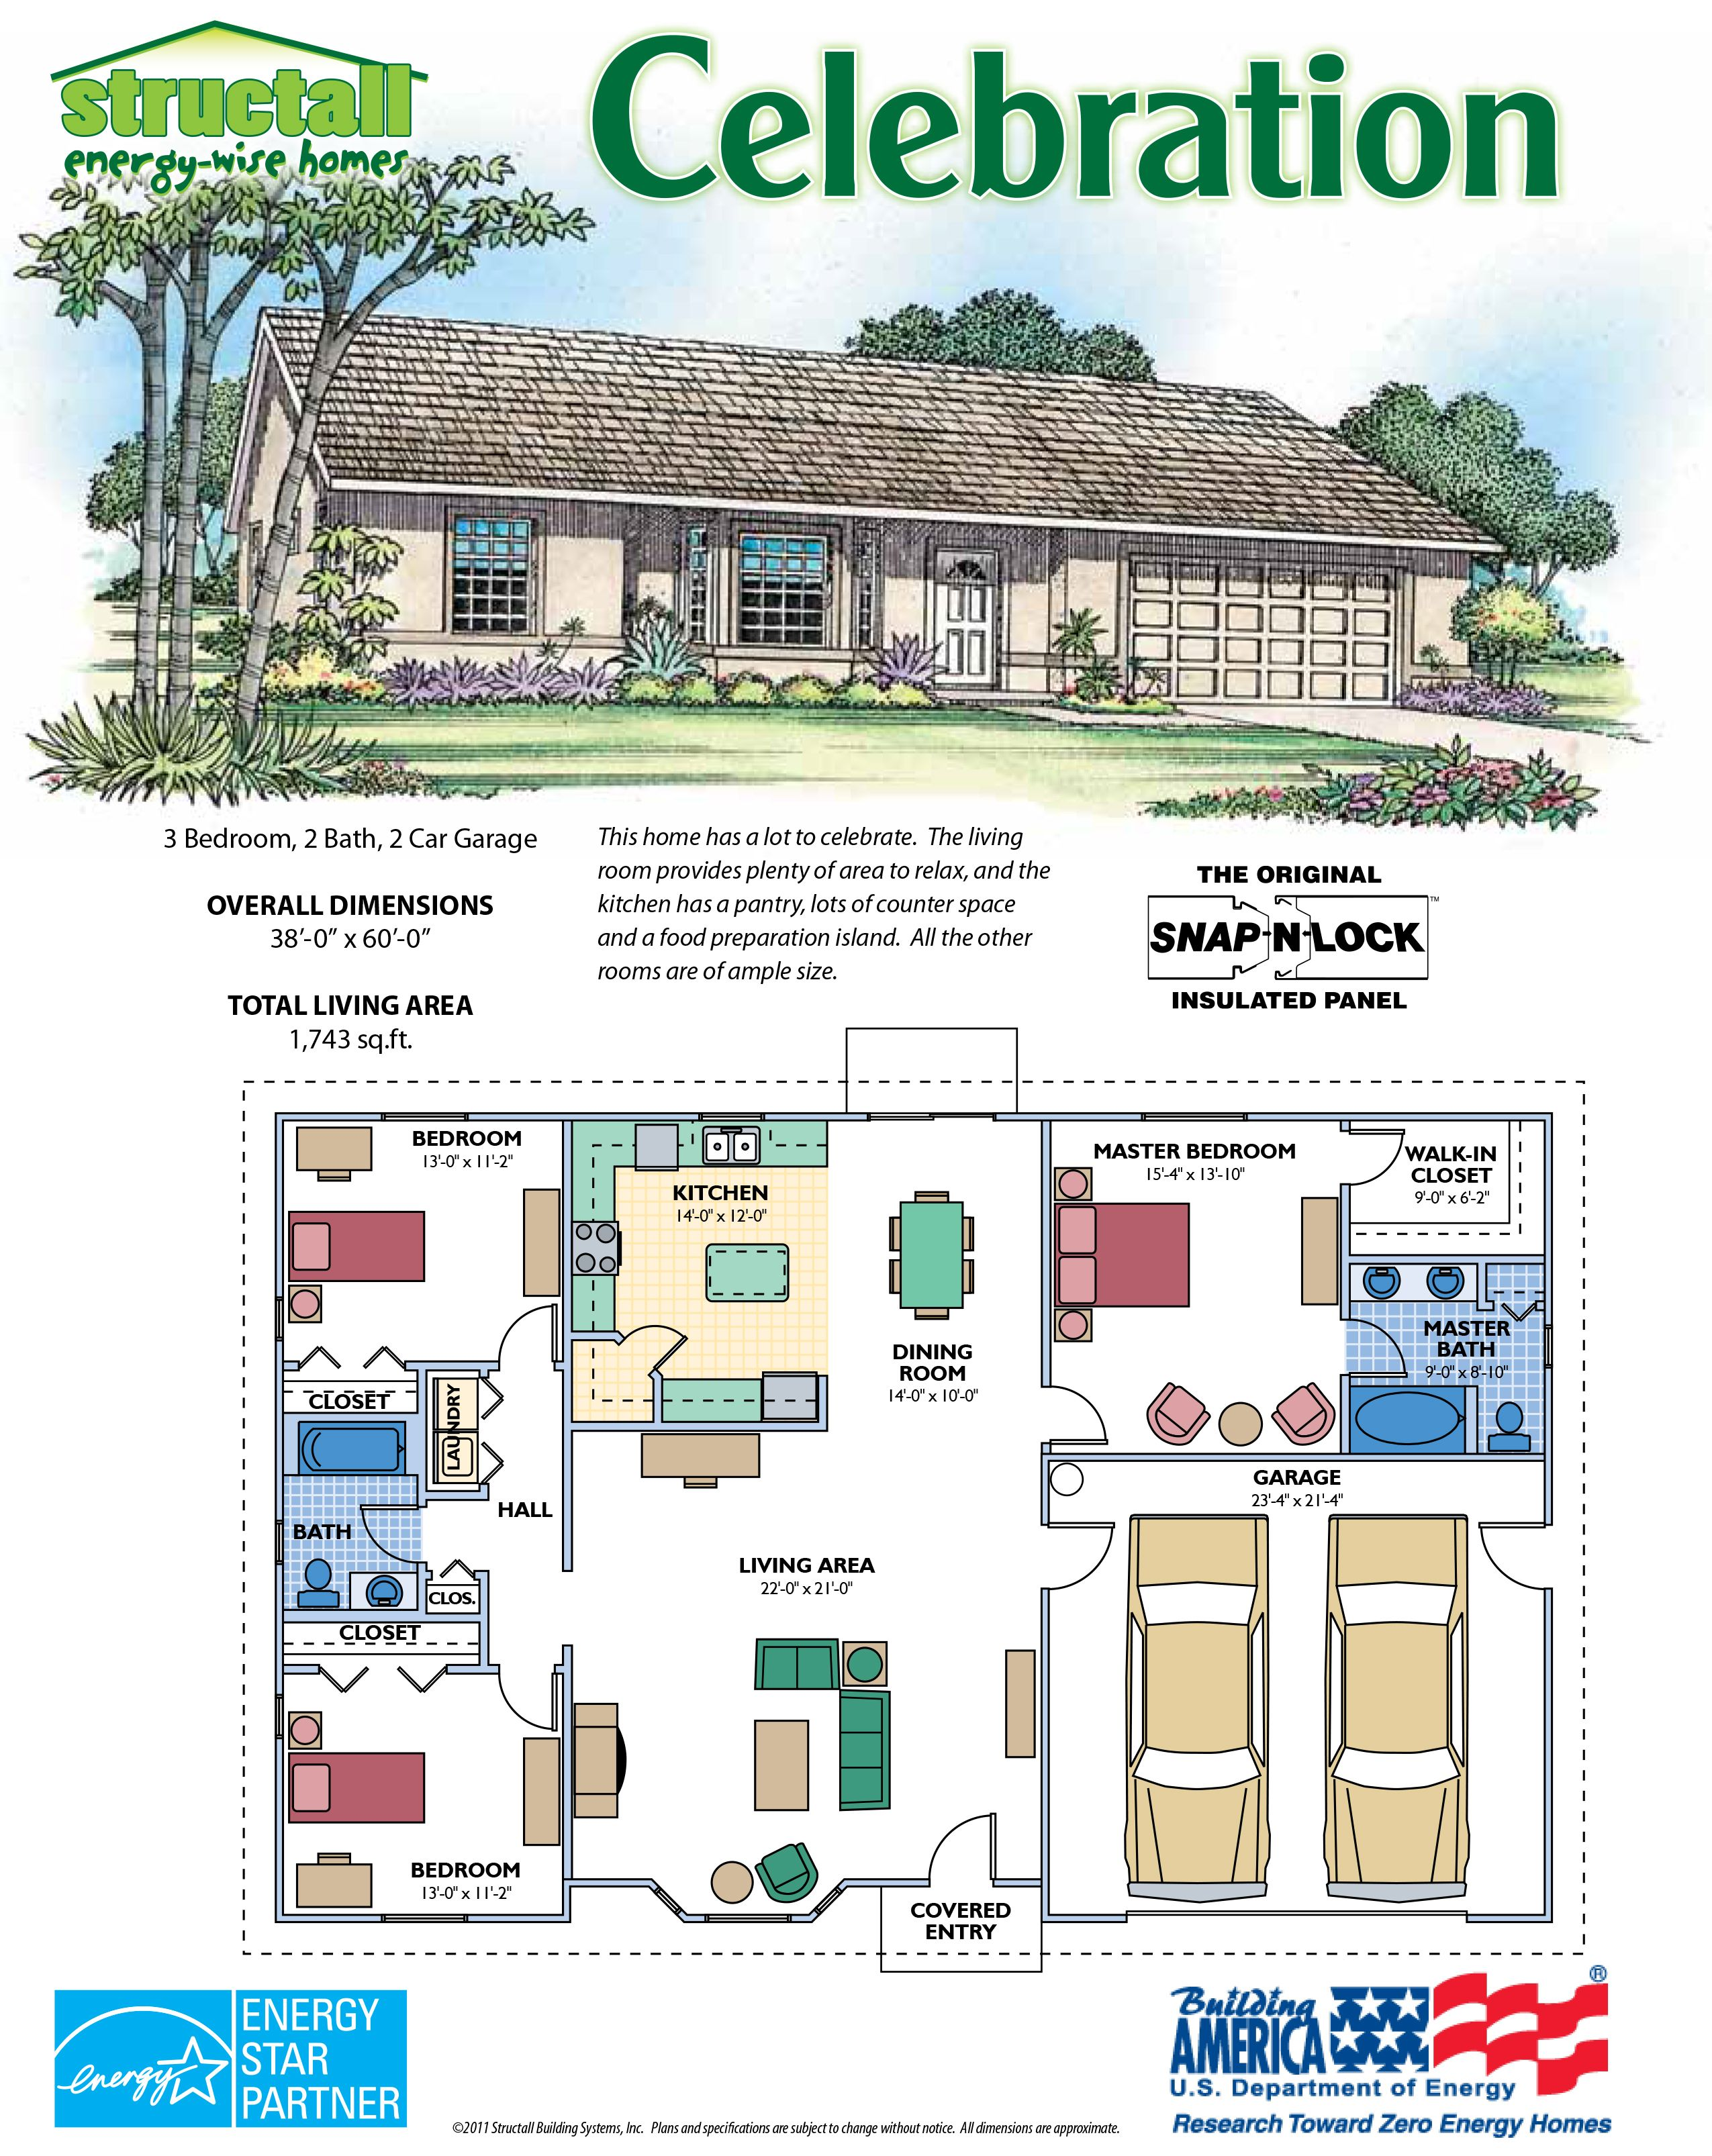 Structall Building Systems Inc Building Systems Structural Insulated Panels House Floor Plans